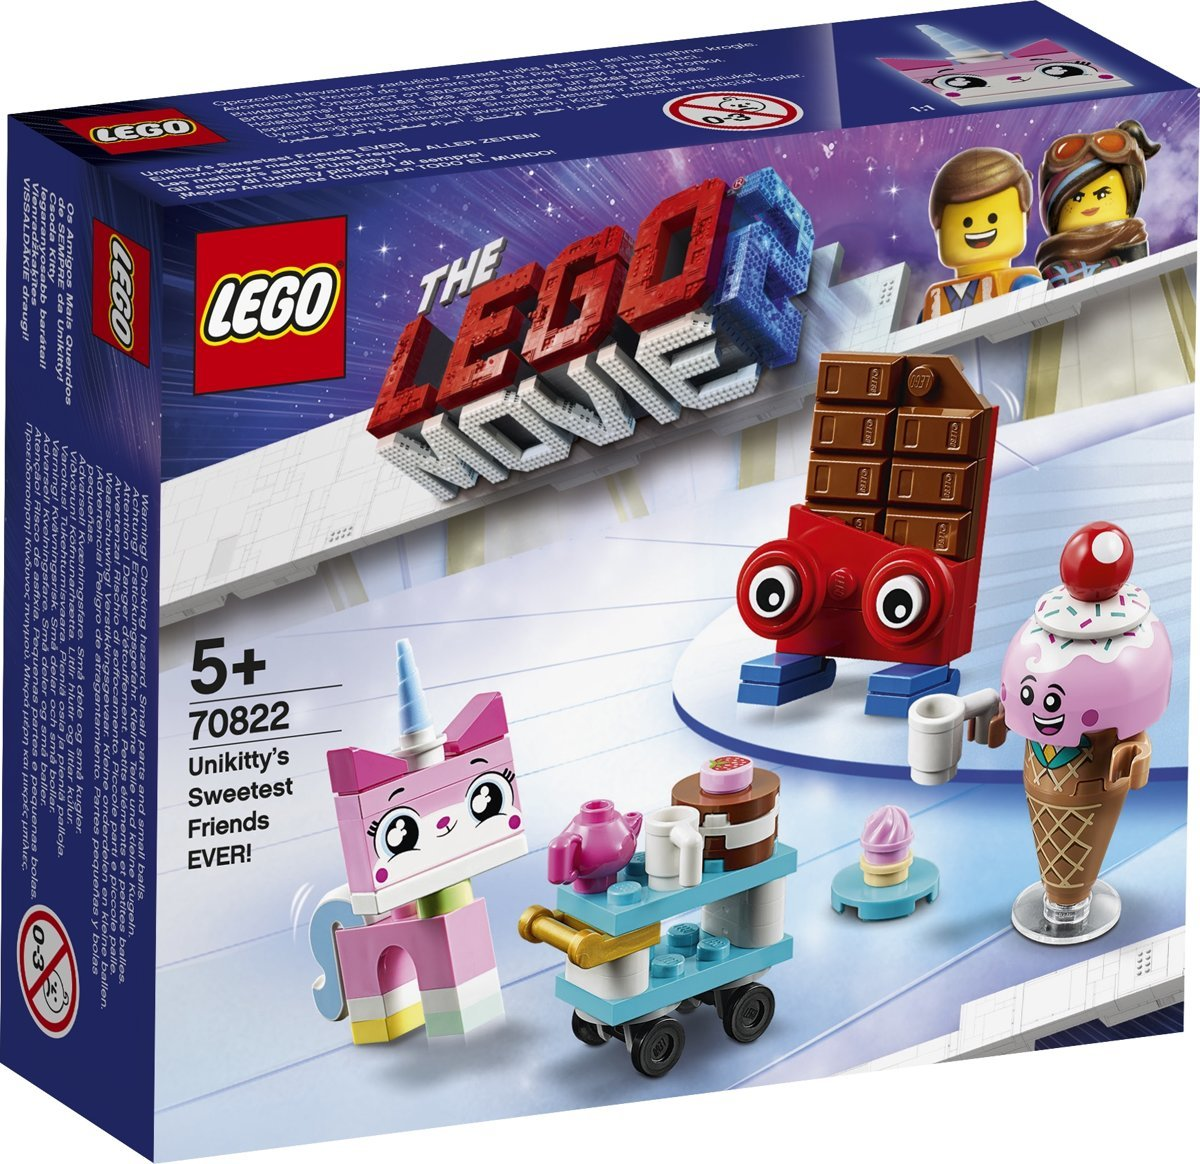 Lego The Movie De Allerliefste Vrienden van Unikitty - 70822